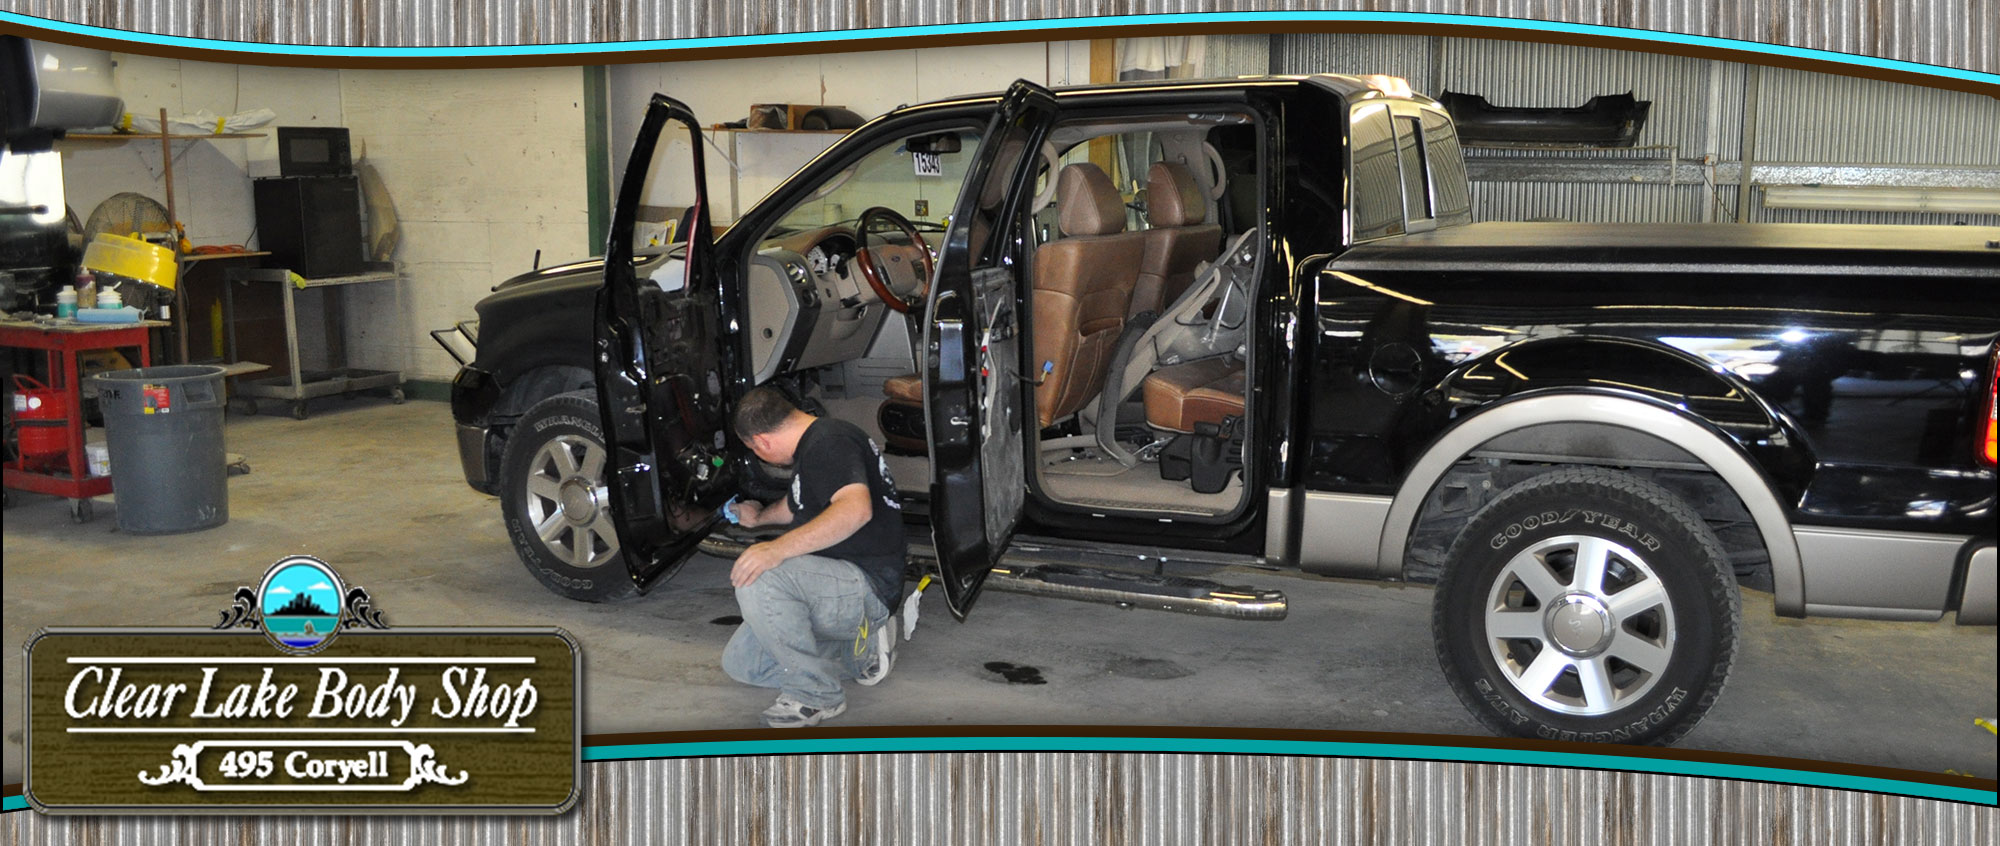 Clear Lake Body Shop, Your Clear Lake Area Body Shop